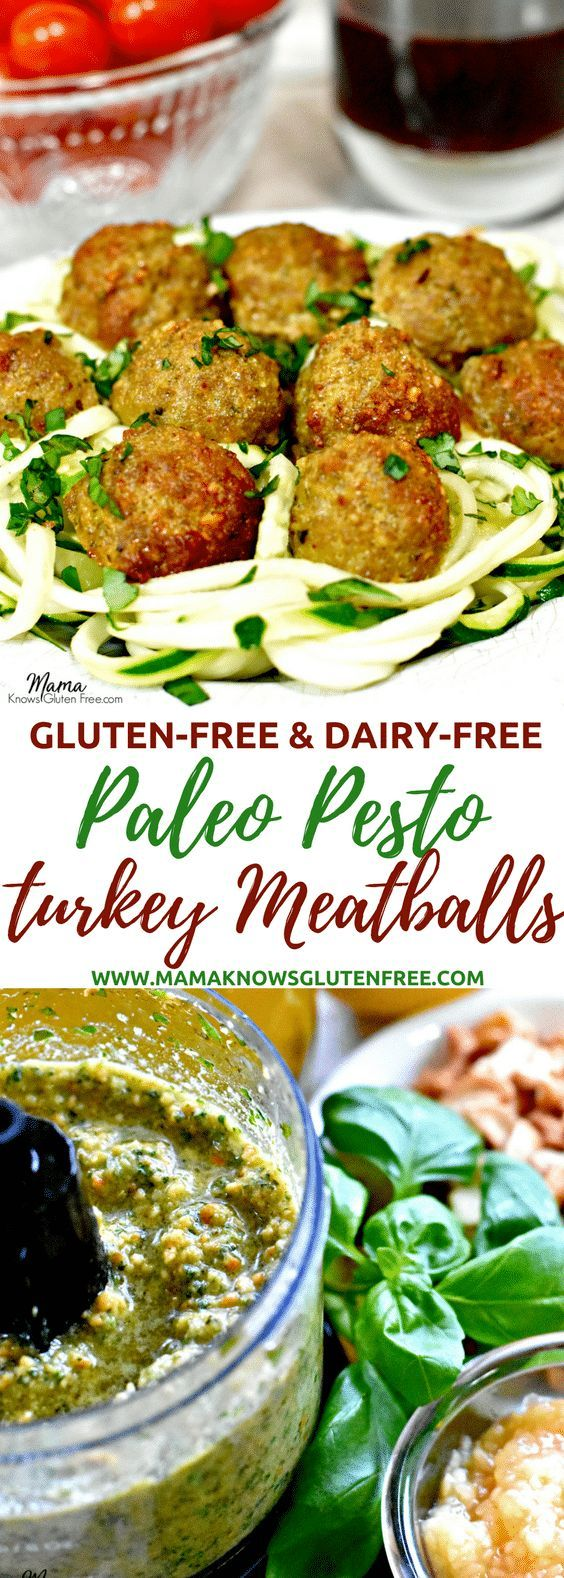 Paleo pesto turkey meatballs are so tender and juicy. They are bursting with flavor from the homemade dairy-free basil pesto sauce. Gluten-free, dairy-free, low carb www.mamaknowsglutenfree #Paleo #glutenfree #dairyfree #turkeymeatballs